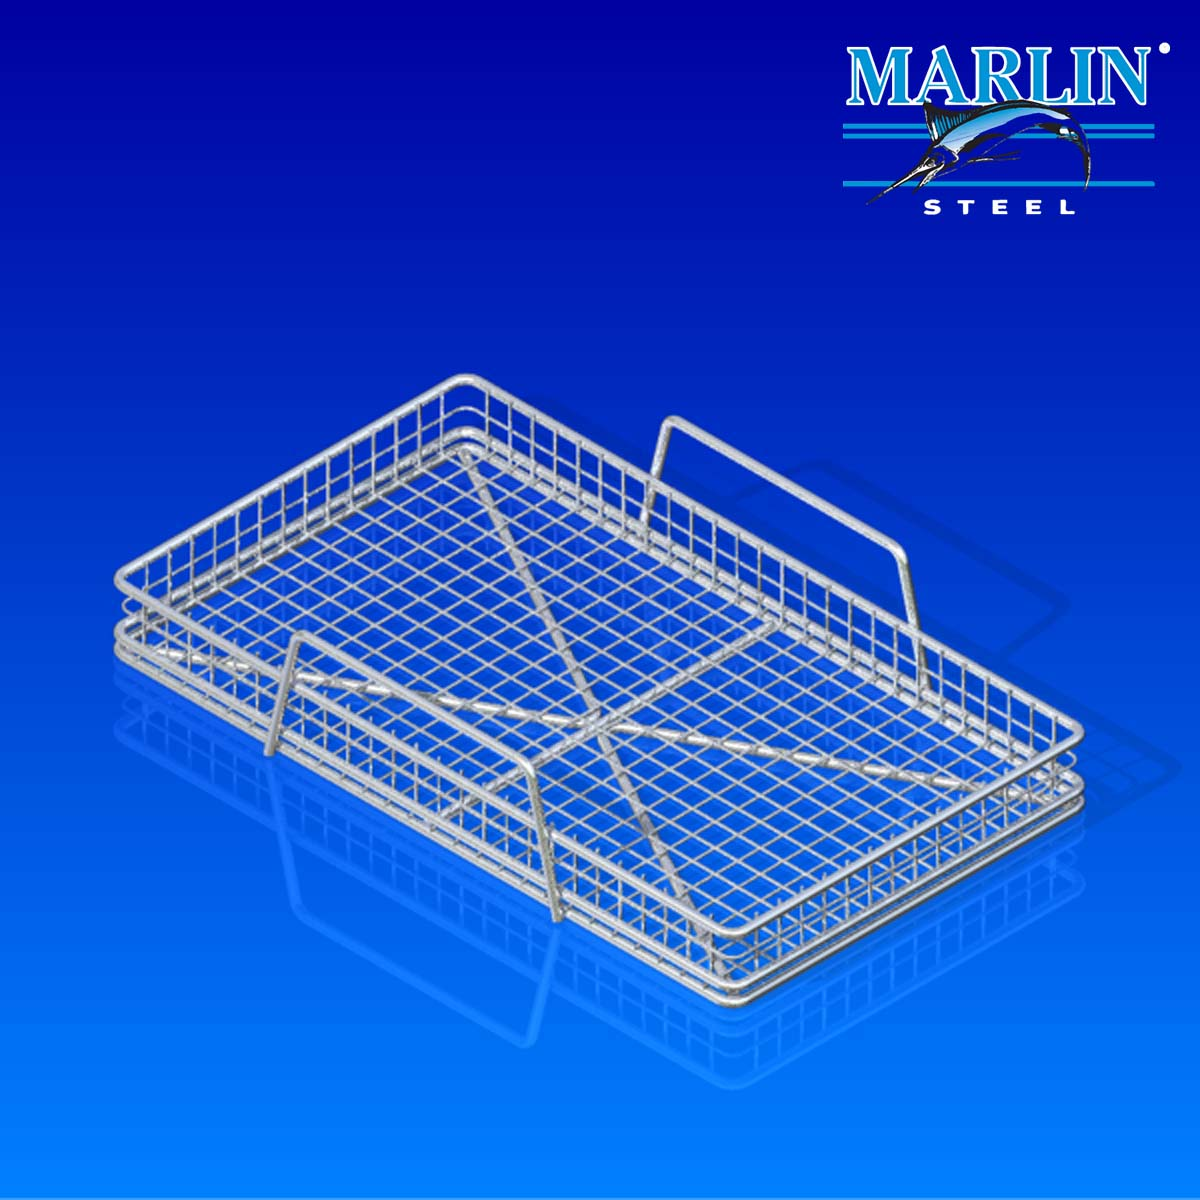 Marlin Steel Basket with Handles 854002